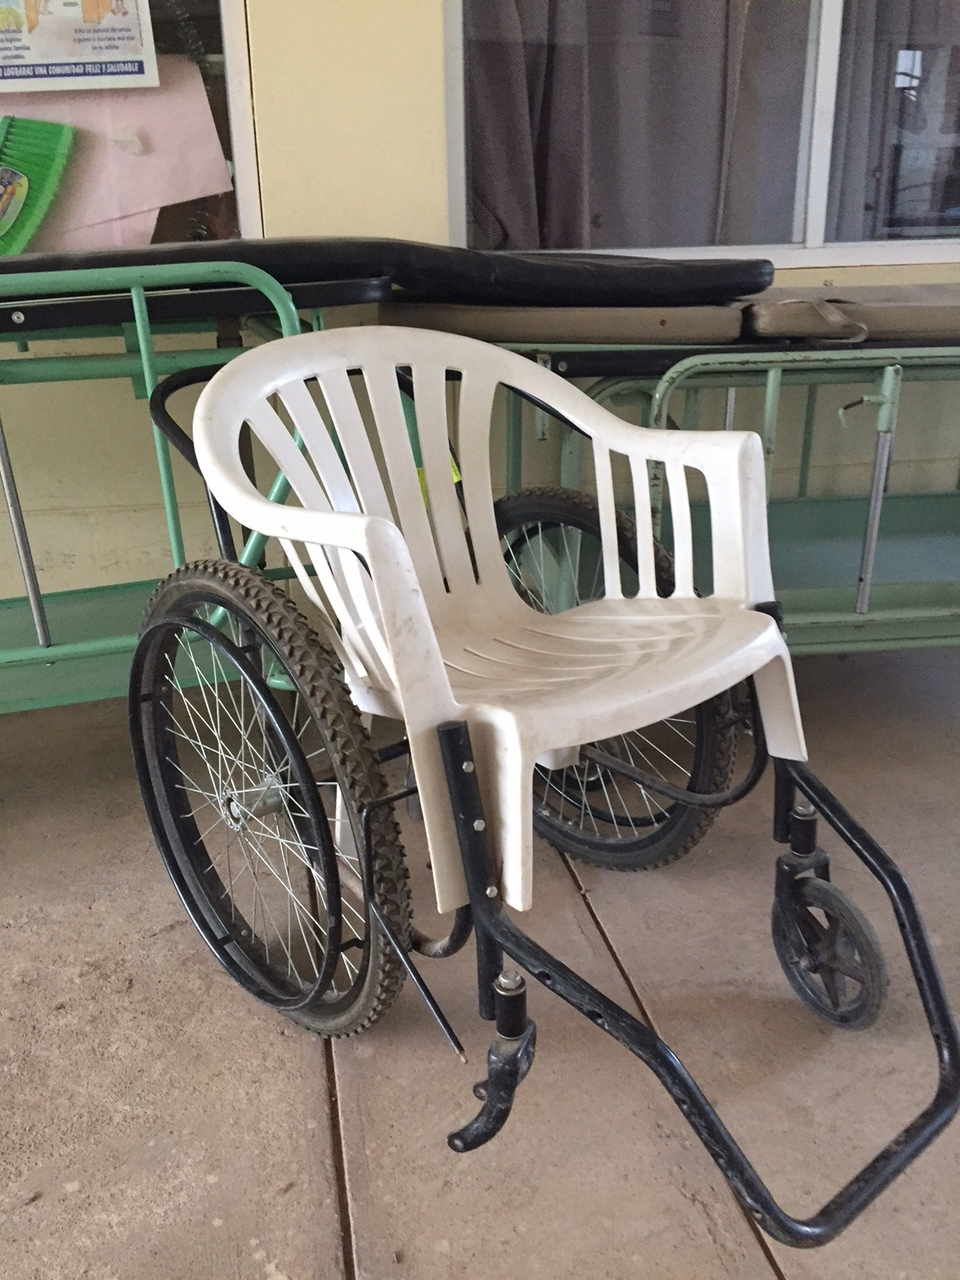 Existing wheelchair